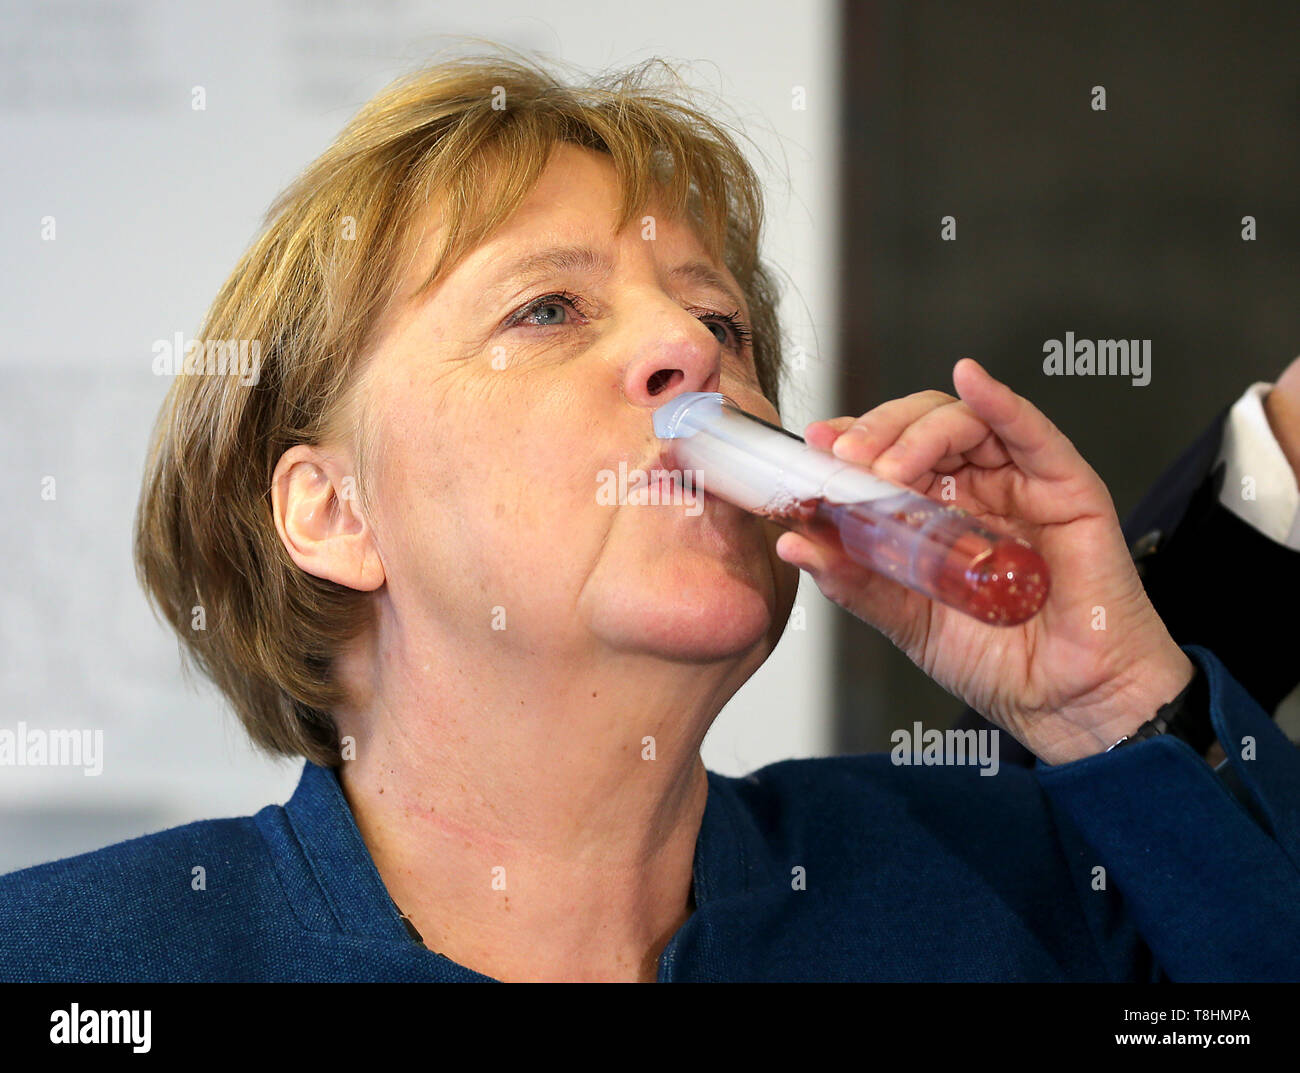 Wuppertal, Germany. 09th May, 2019. Chancellor Angela Merkel (CDU) drinks dry ice with syrup from a test tube at Wuppertal Junior University. The Wuppertal Junior University is a nationwide unique extracurricular educational and research institution for 4 to 20 year olds. Credit: Oliver Berg/dpa/Alamy Live News - Stock Image